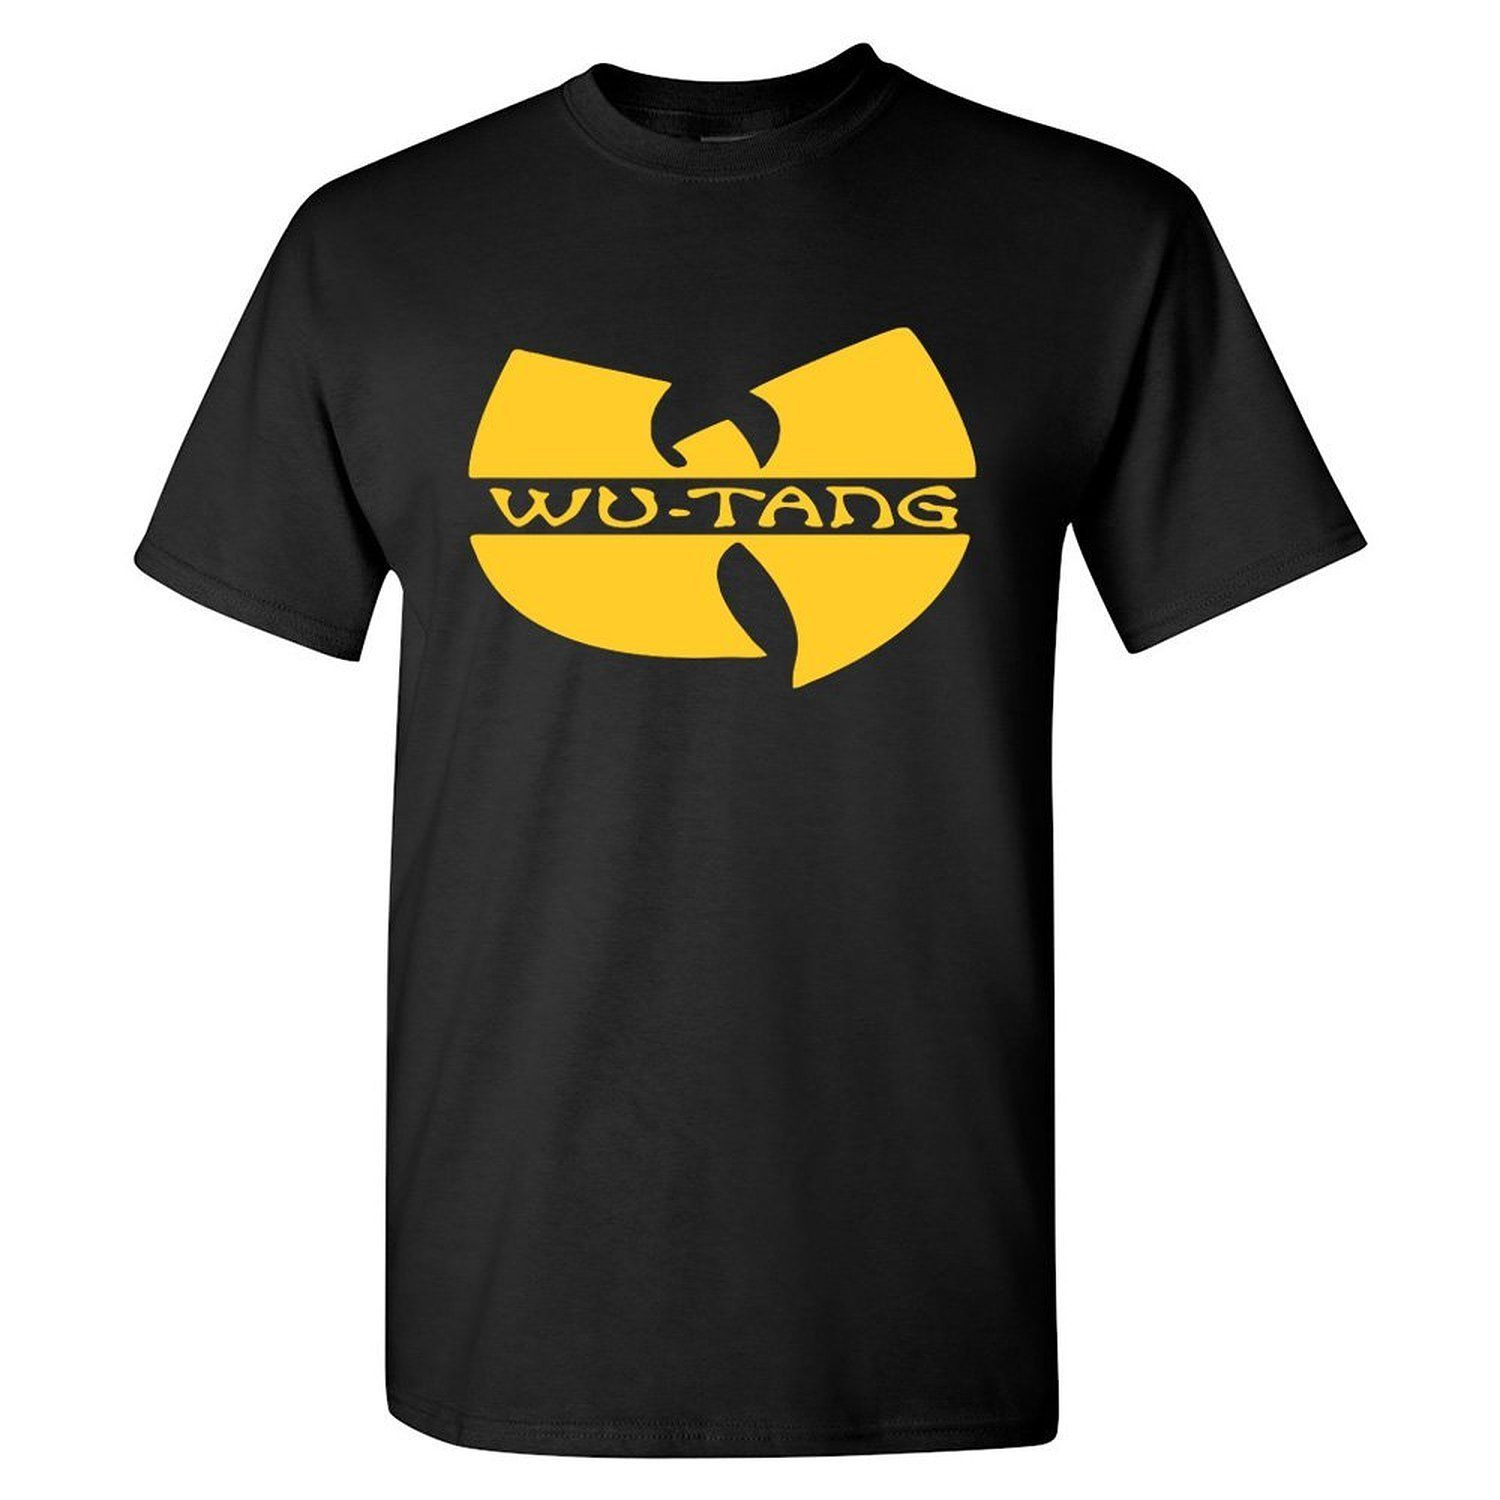 mens hip hop rappers graphic t shirts wu tang products pinterest rh nz pinterest com wu tang logo hd wu tang logo origin